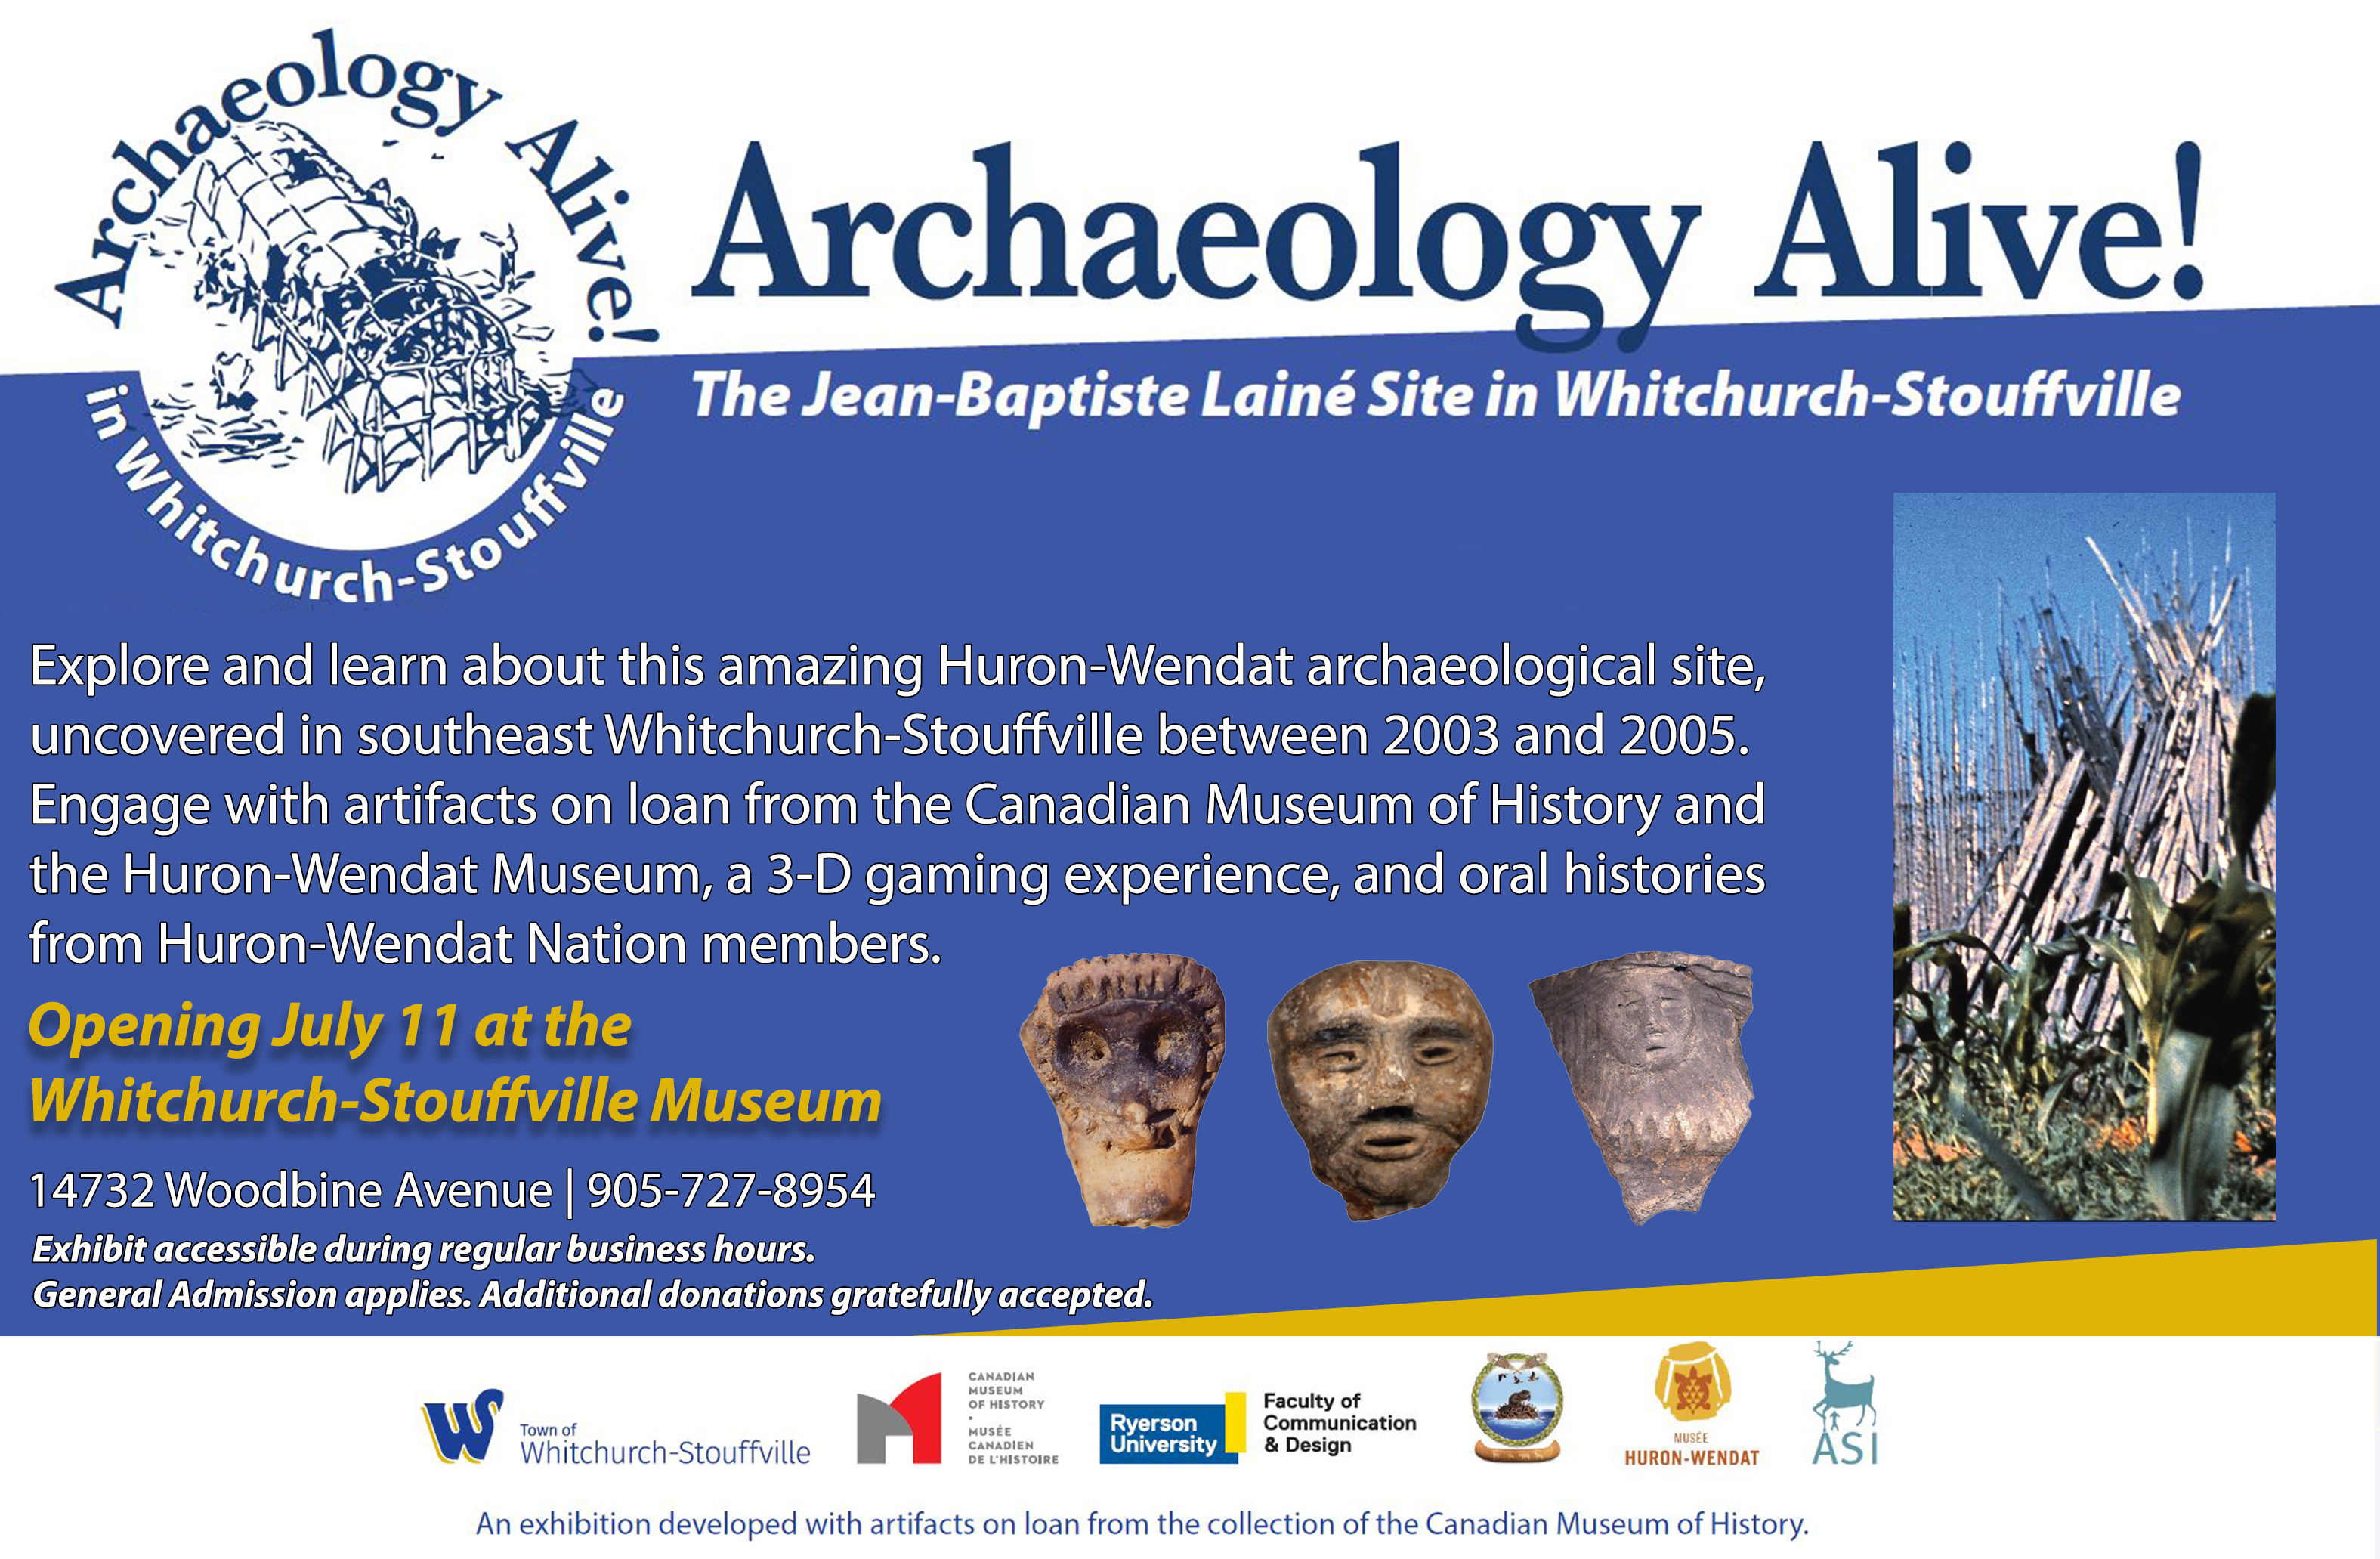 Half Page ad - Exhibit: Archaeology Alive! The Jean-Baptiste Lainé site in Whitchurch-Stouffville